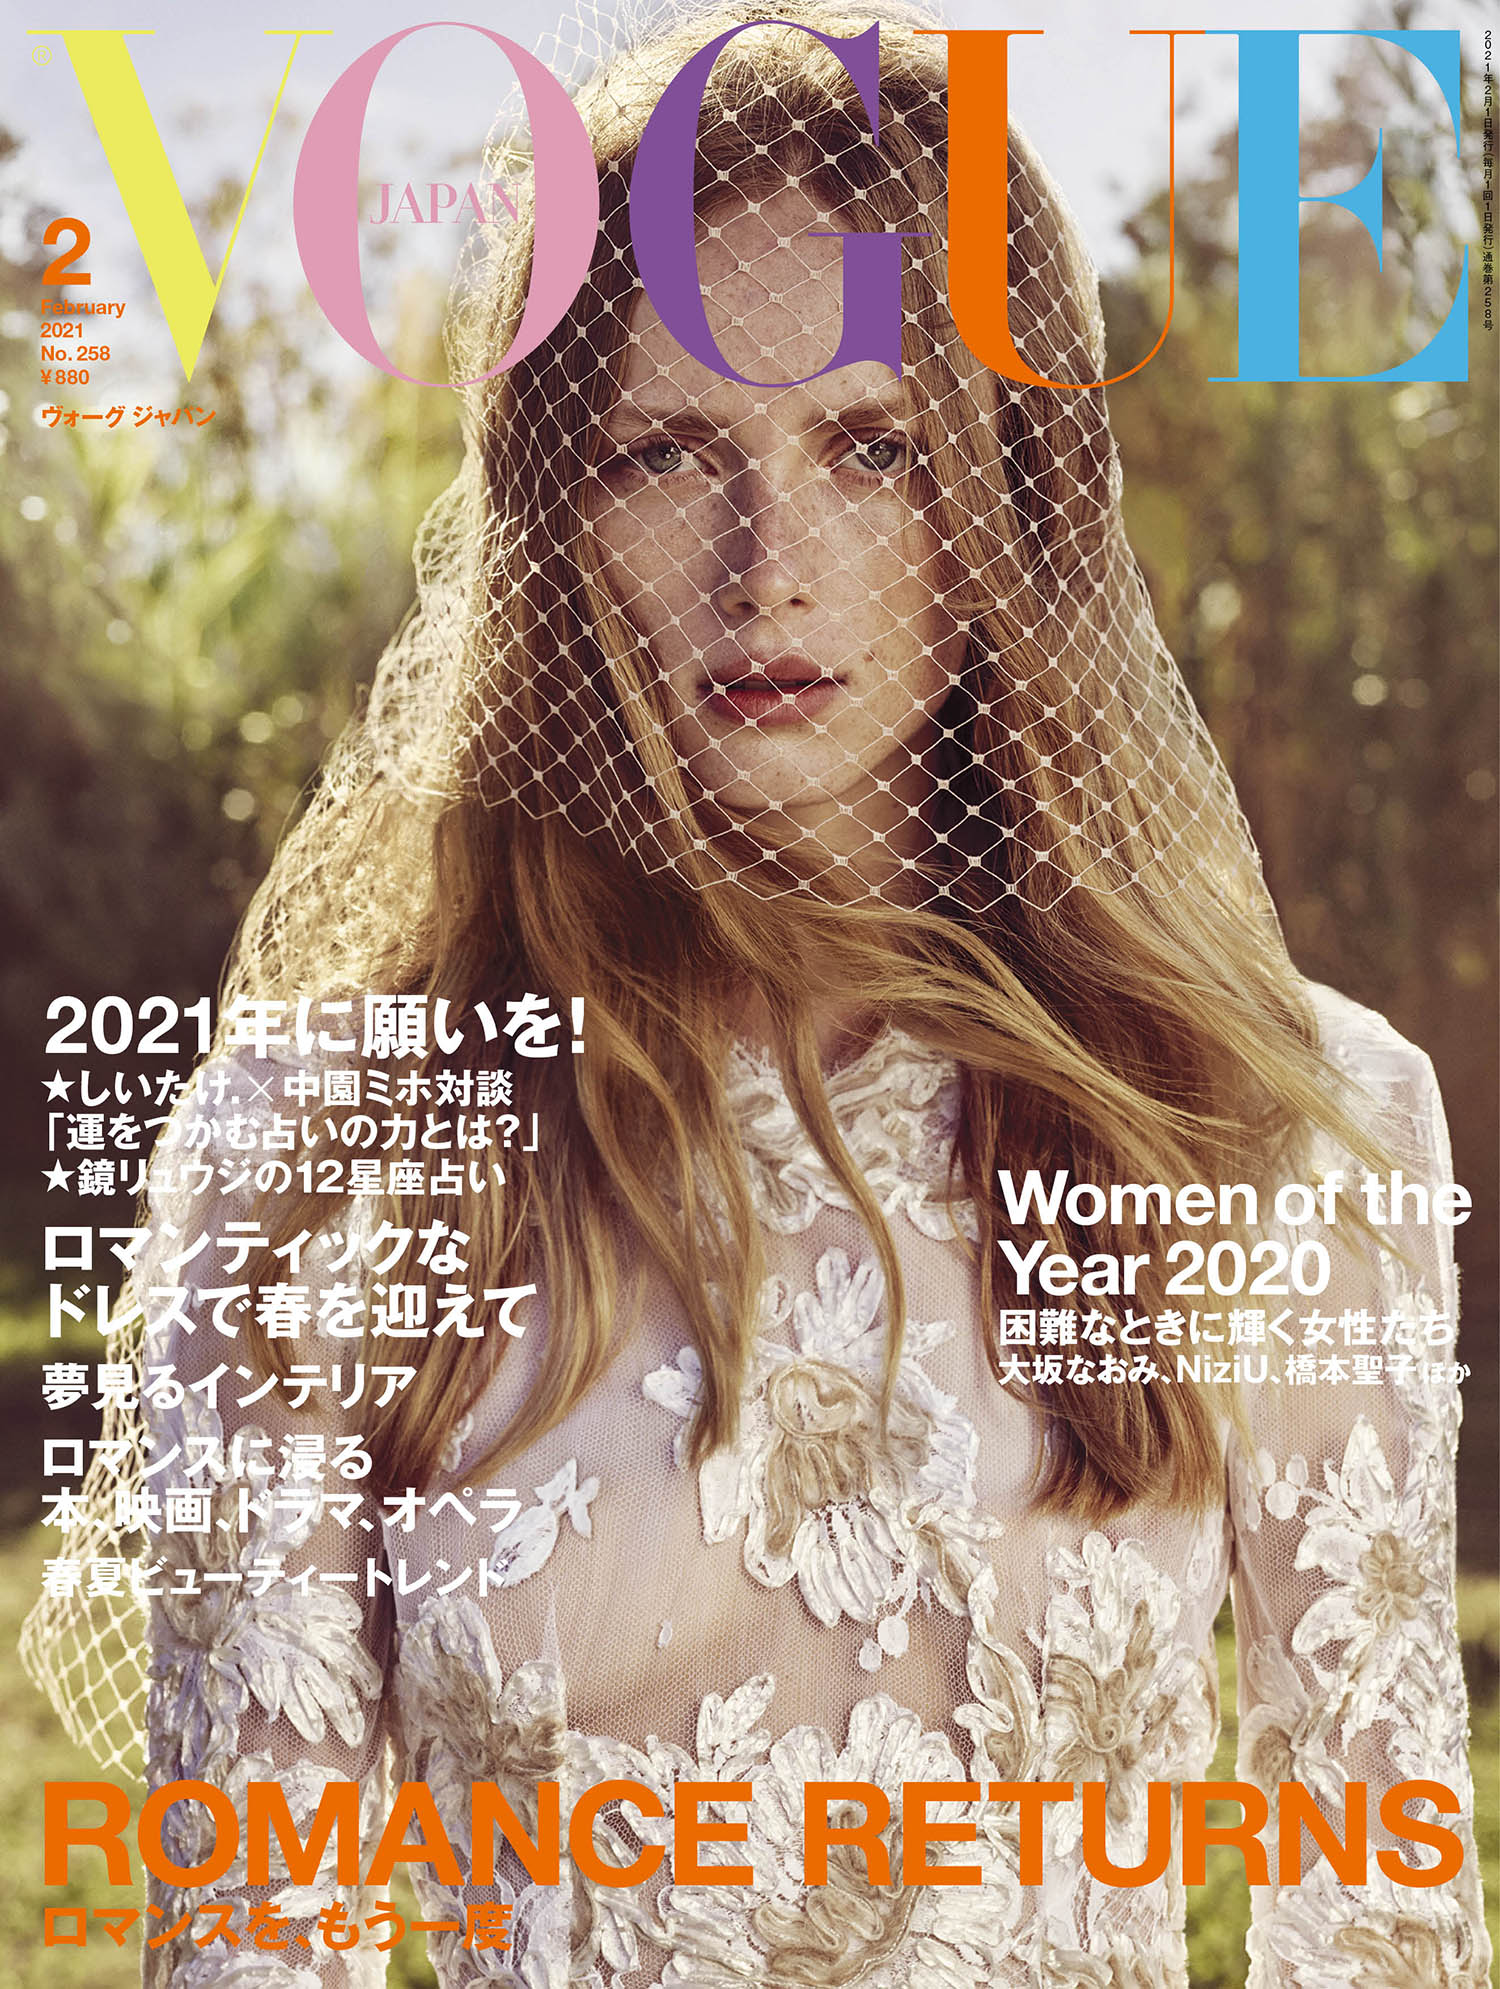 Rianne van Rompaey covers Vogue Japan February 2021 by Luigi & Iango